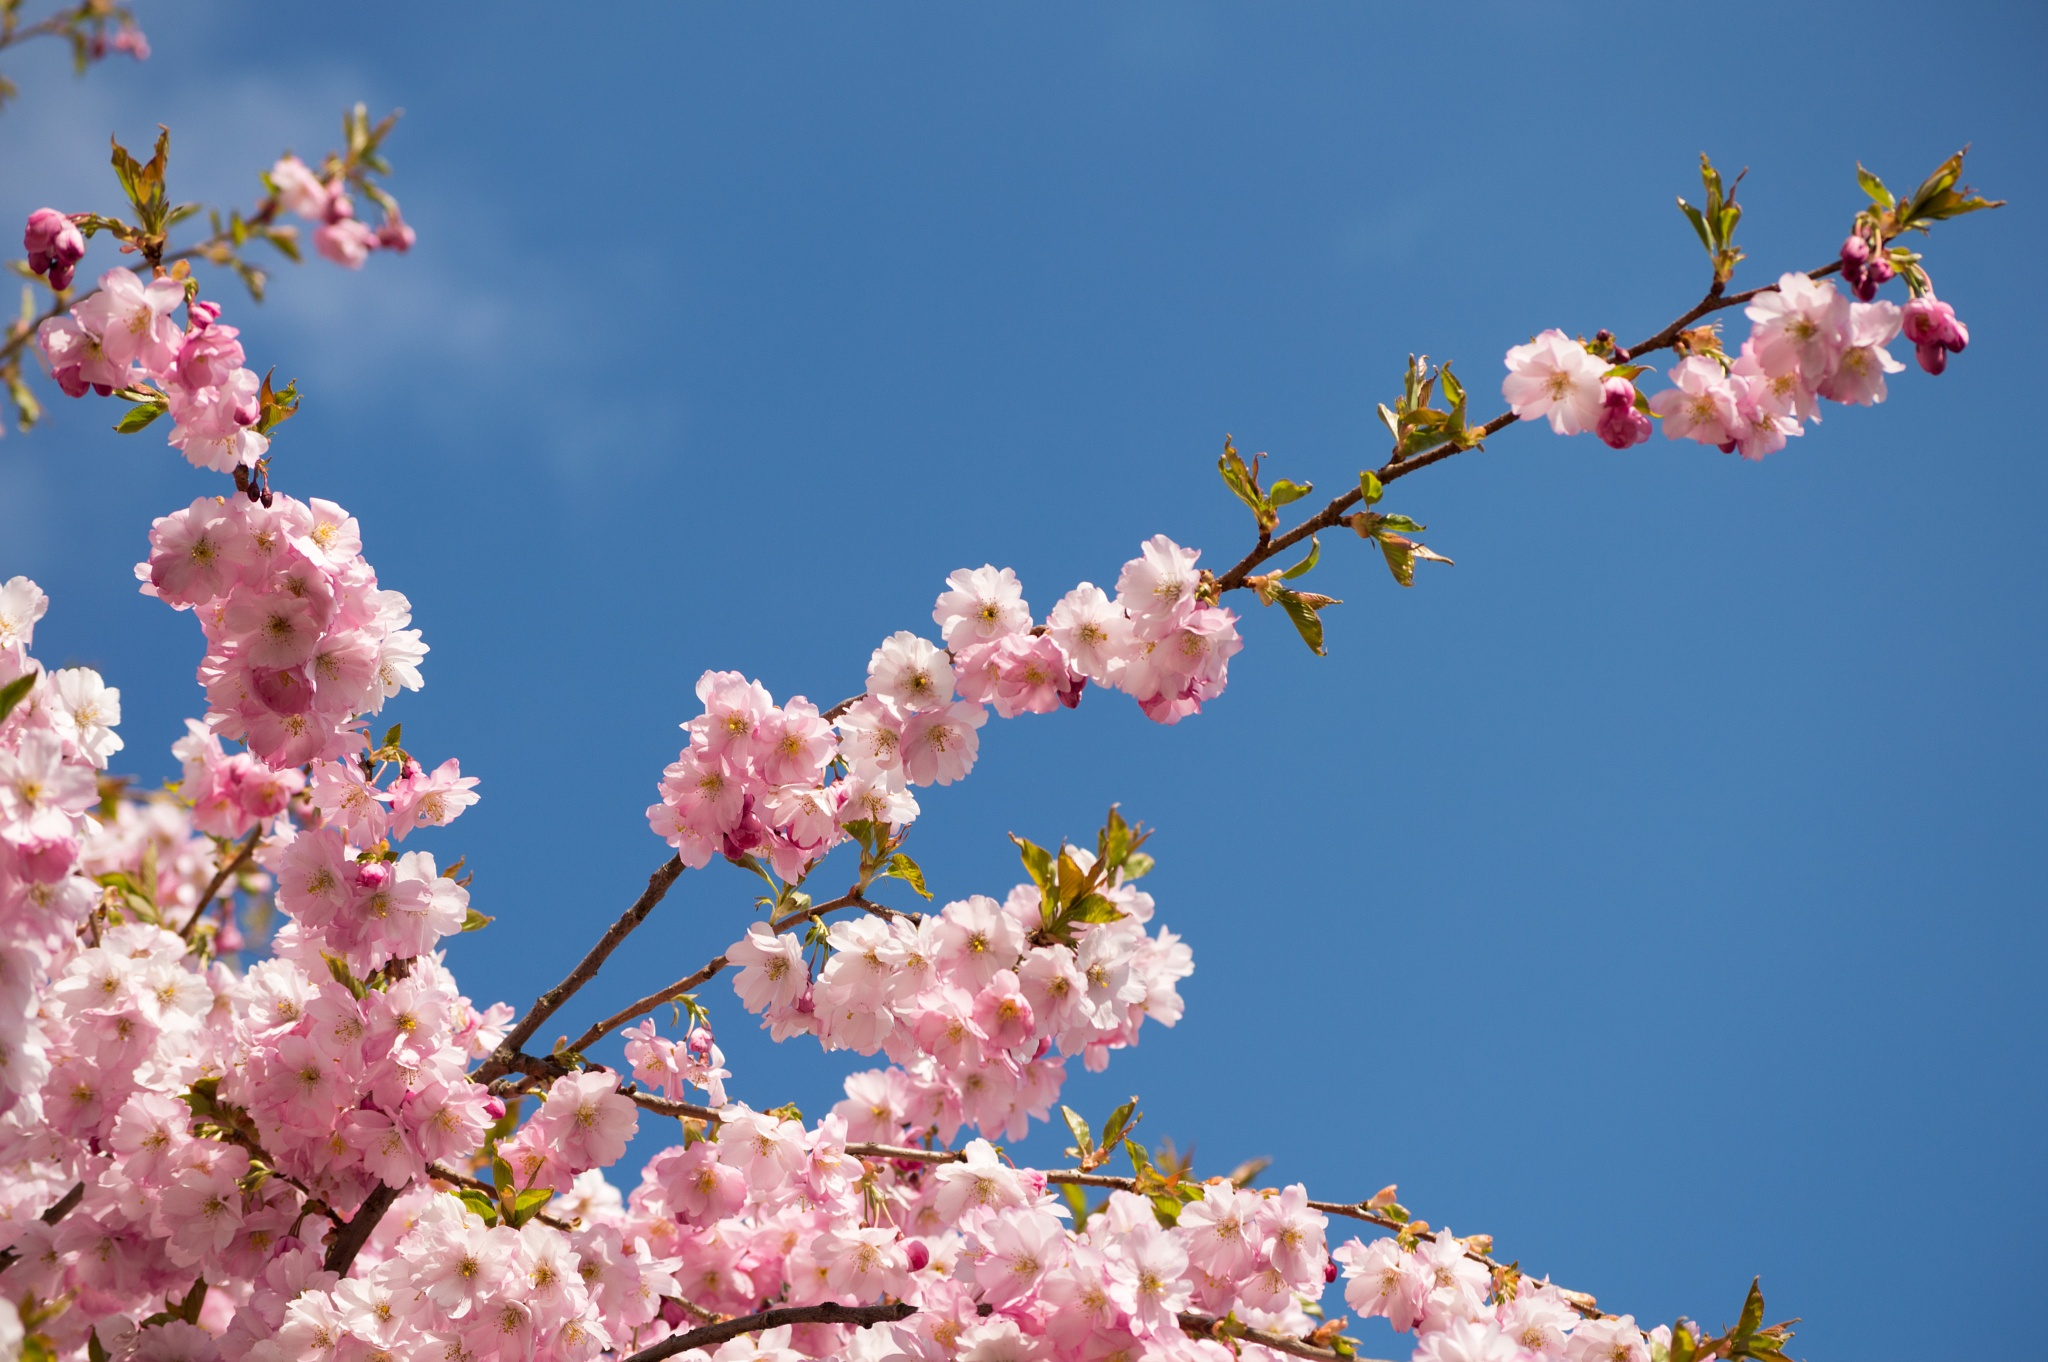 Cherry blossom and blue sky by Micke Seise